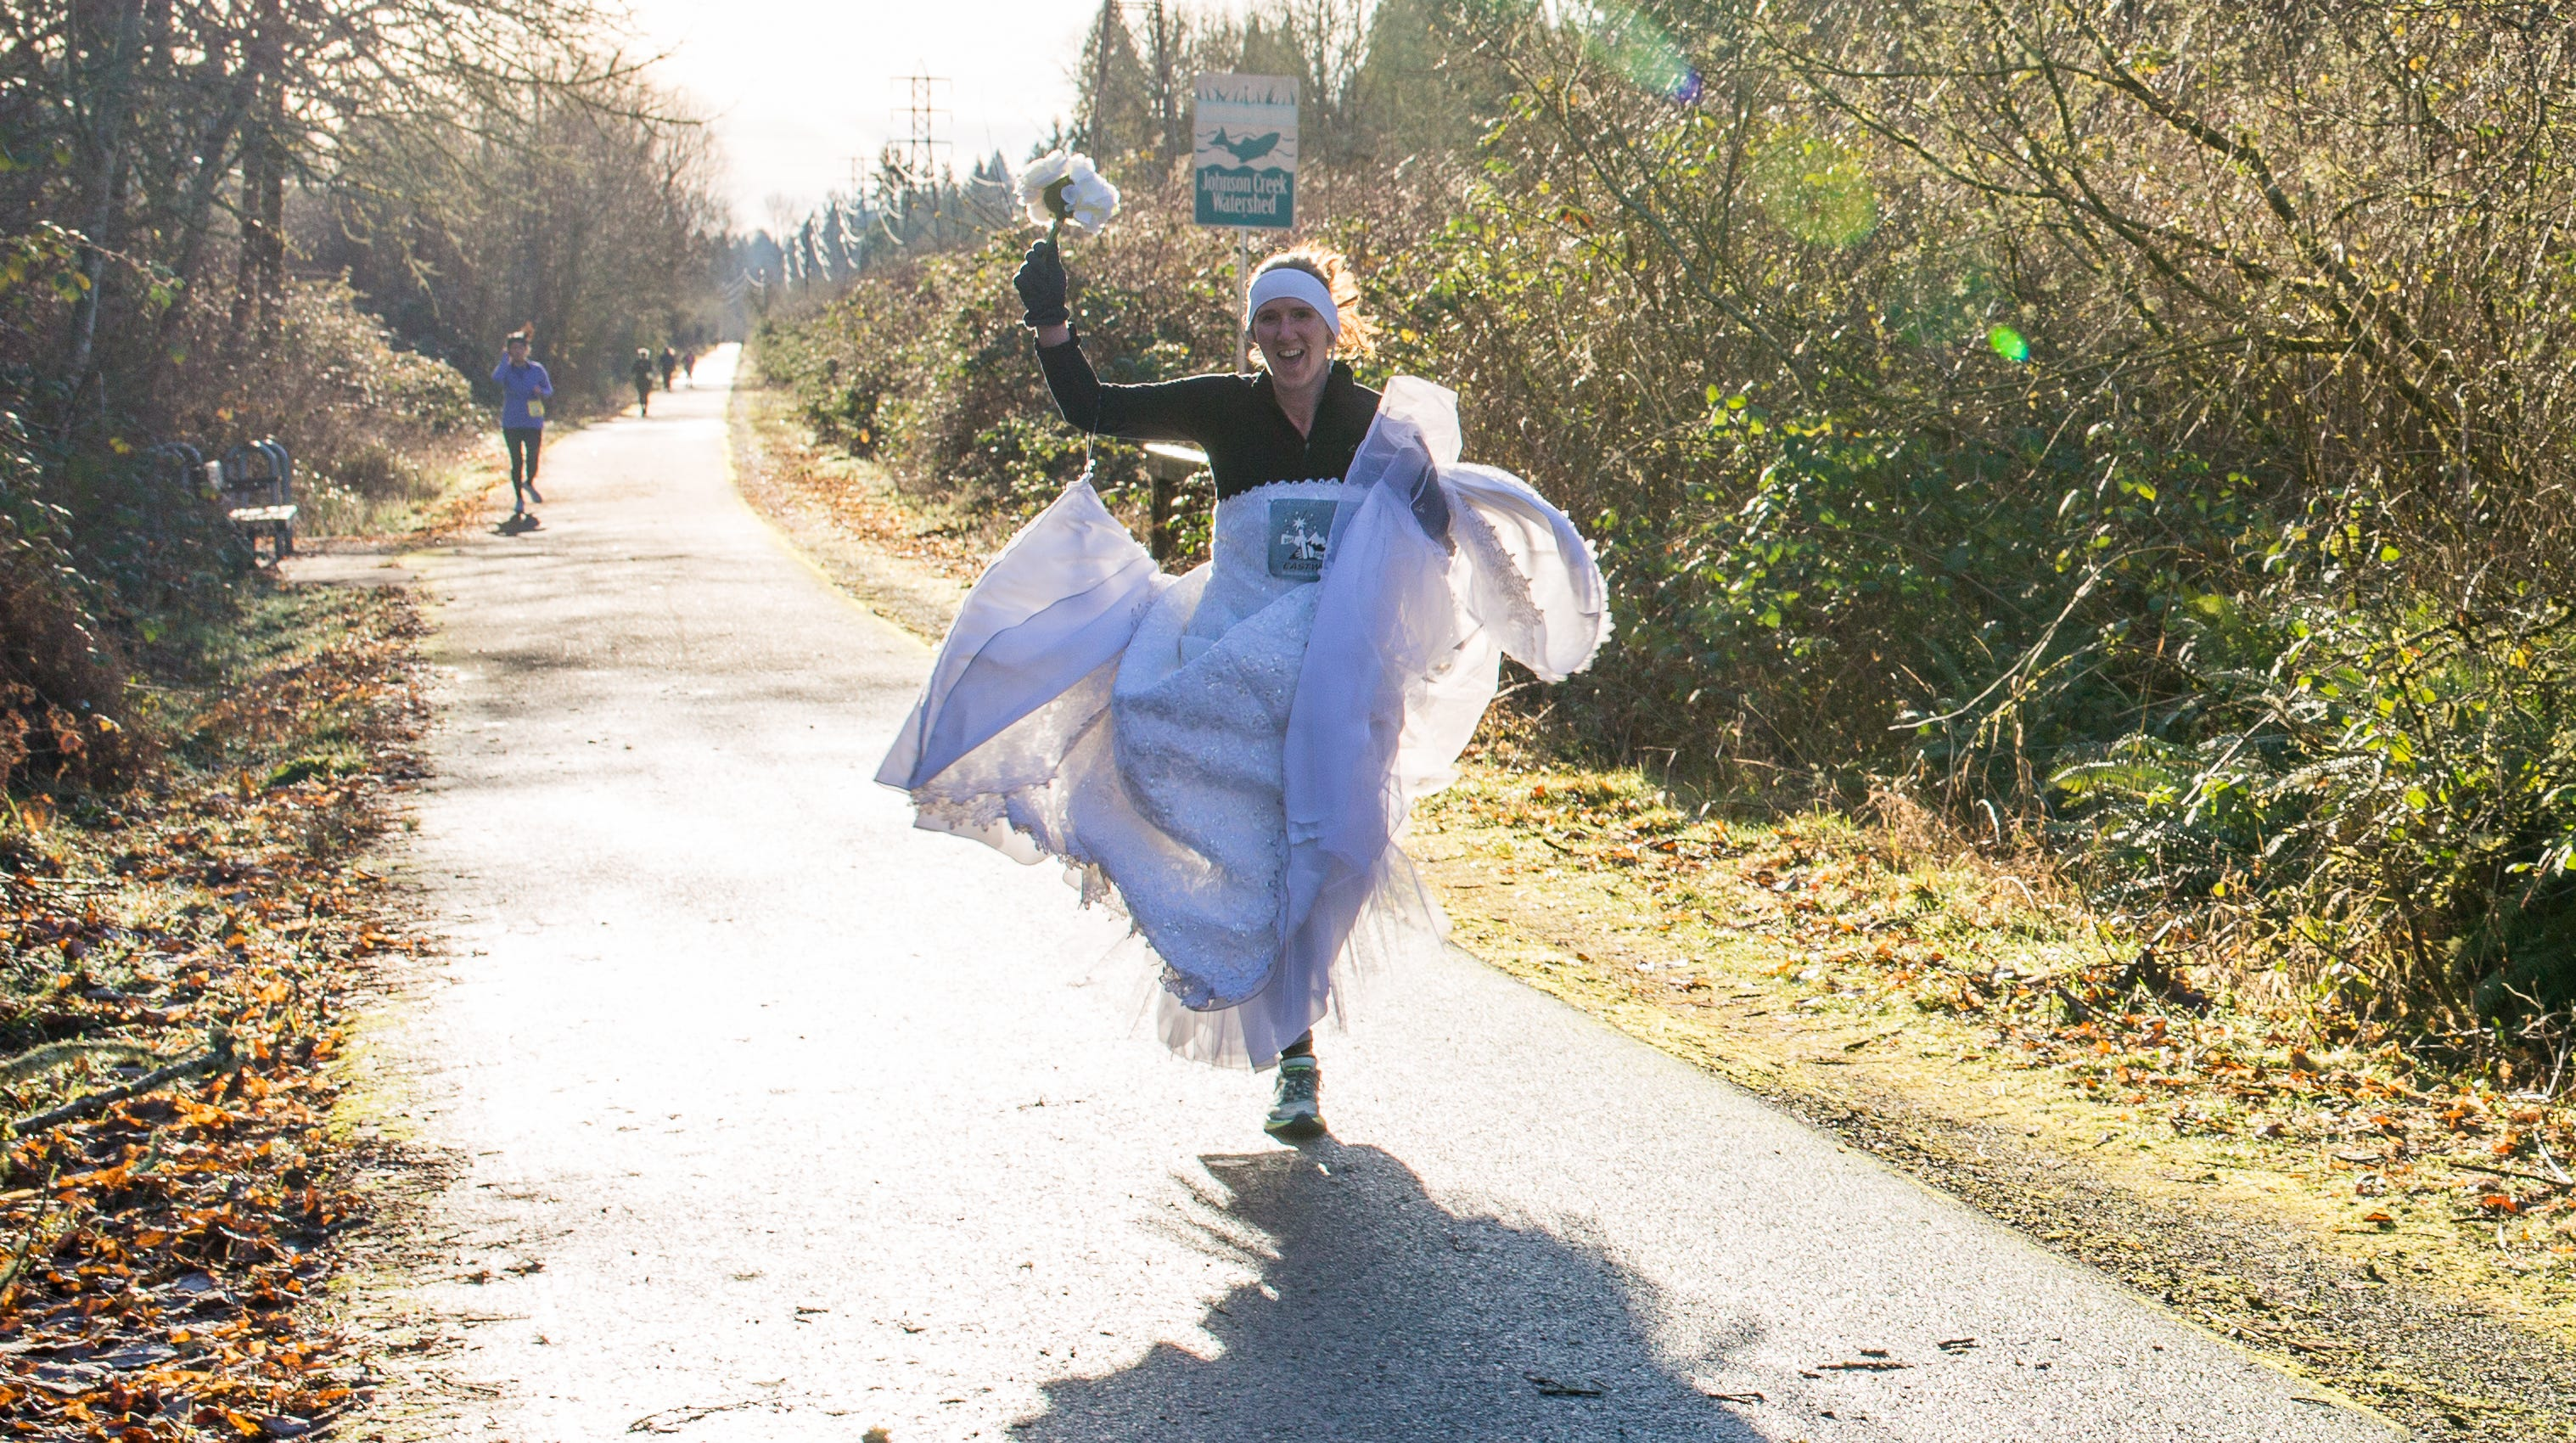 Angela Watts, 35, of Salem, ran the Resolution Relay in her wedding dress in Boring, Oregon, on Dec. 31, 2017. To encourage donations to her Dressember challenge, she promised to run the race in her dress if she reached her $3,000 fundraising goal.